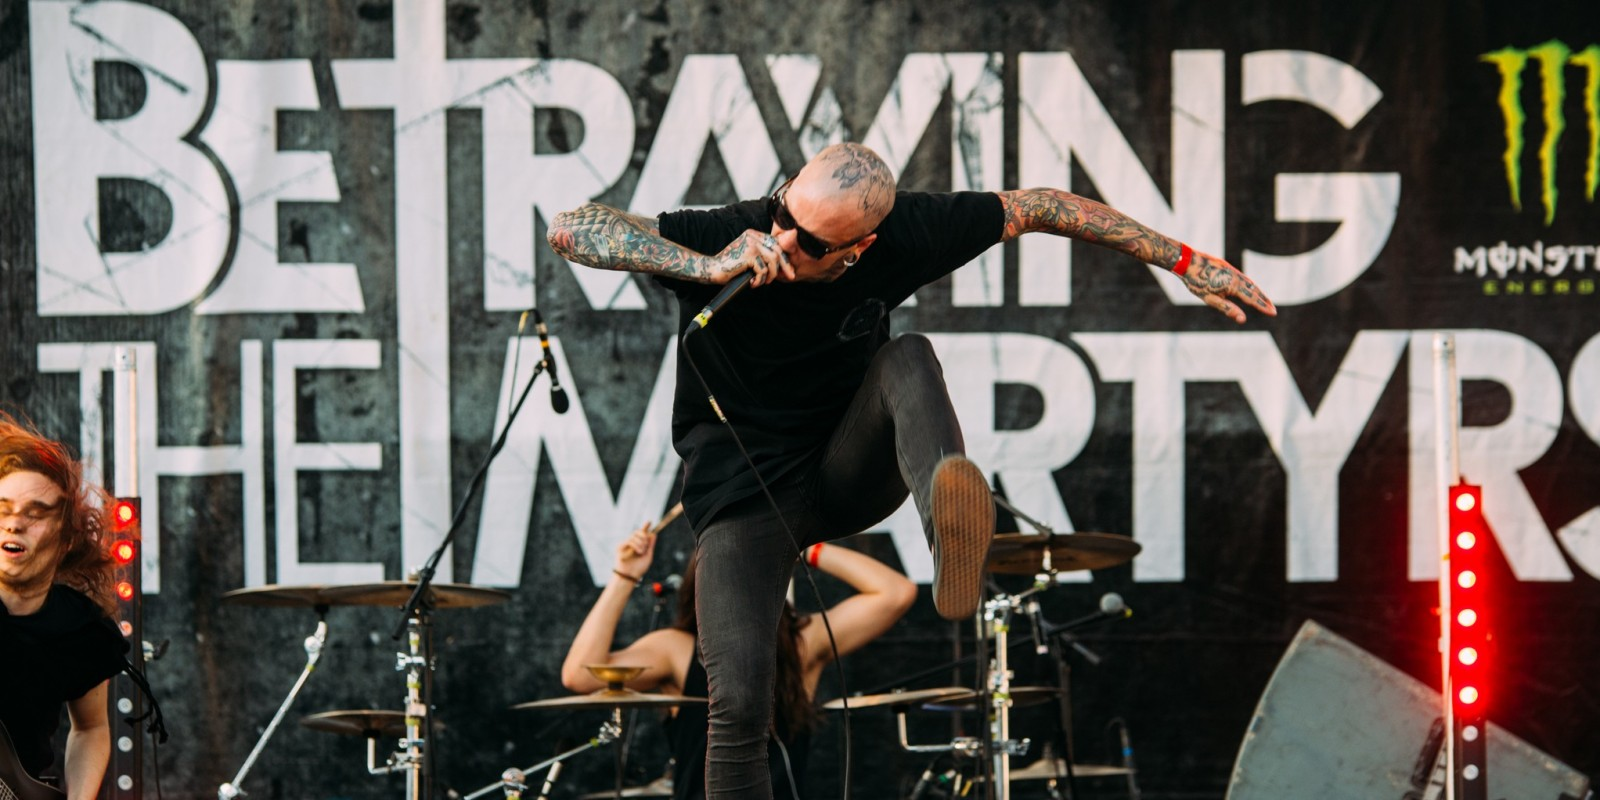 Betraying the Martyrs at the 2015 Full Tension Festival in Bolzano, Italy